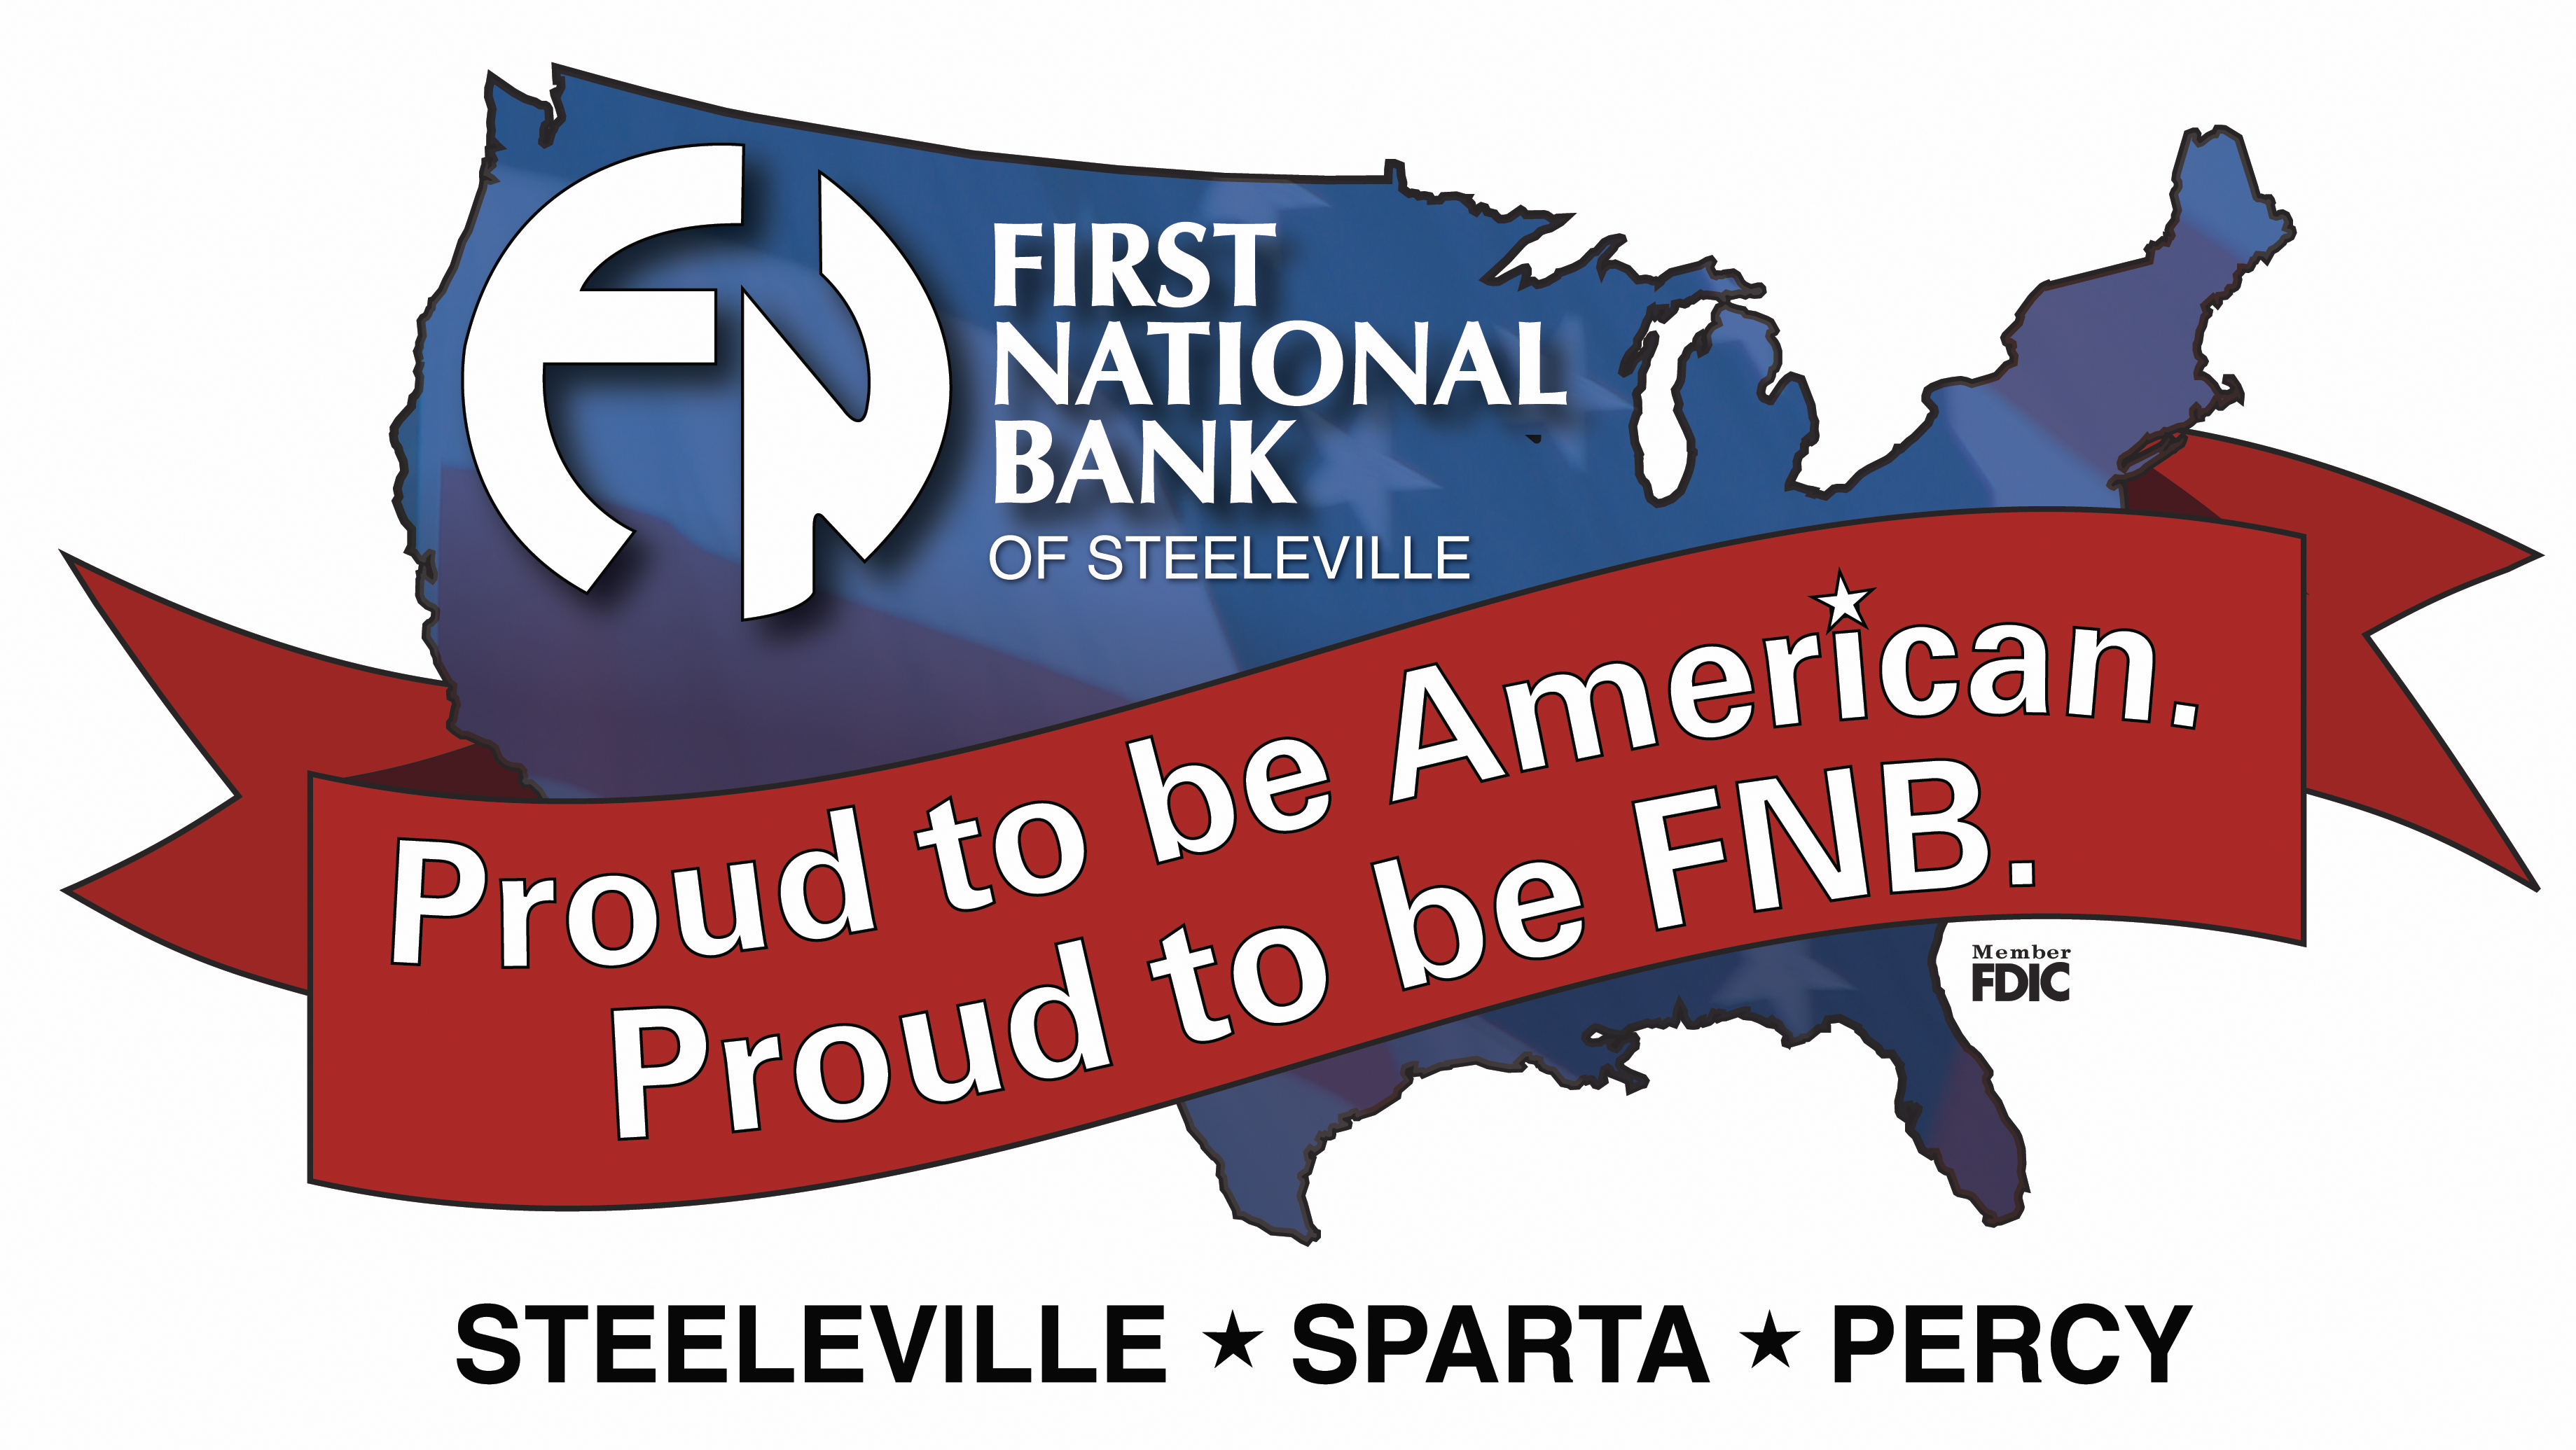 Proud to be FNB